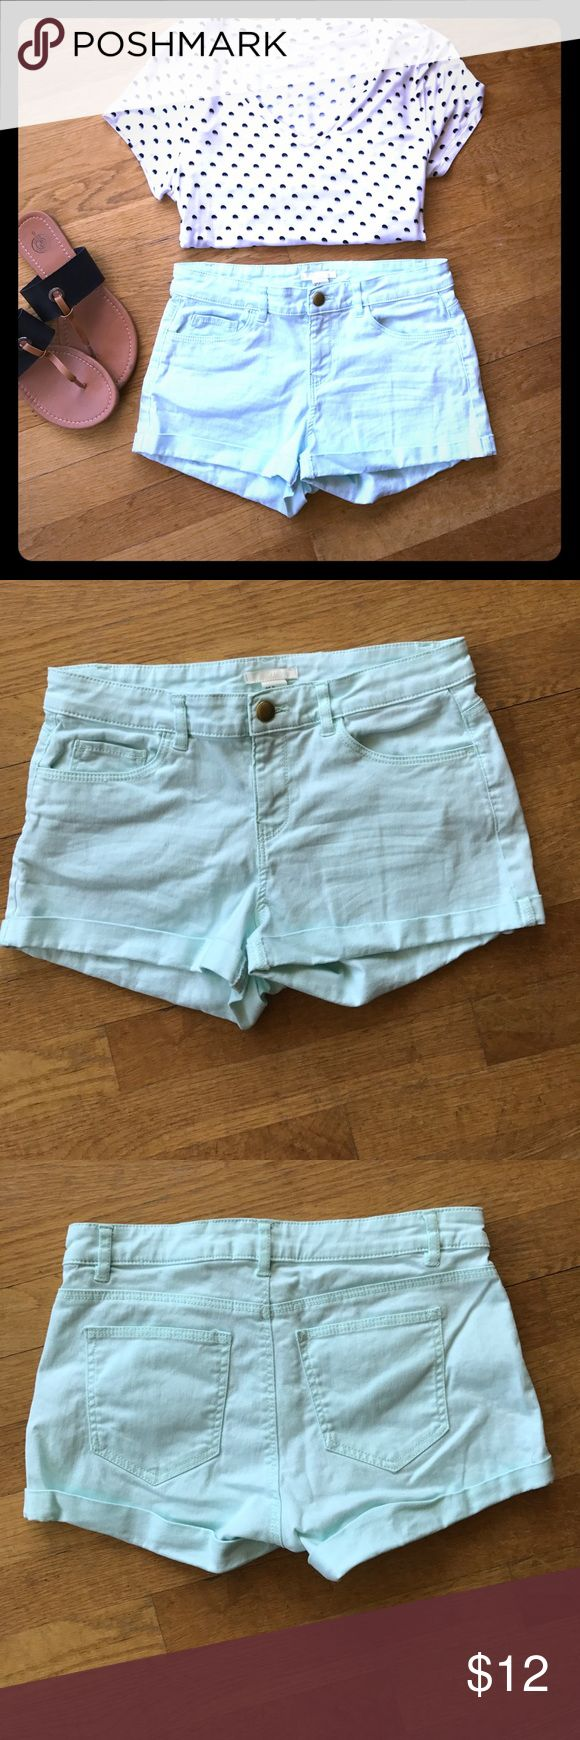 Mint shorts These shorts are super stylish and perfect for summer! ☀️🌸They are in great used condition. Polka dot shirt and sandals are also available (see other listings). H&M Shorts